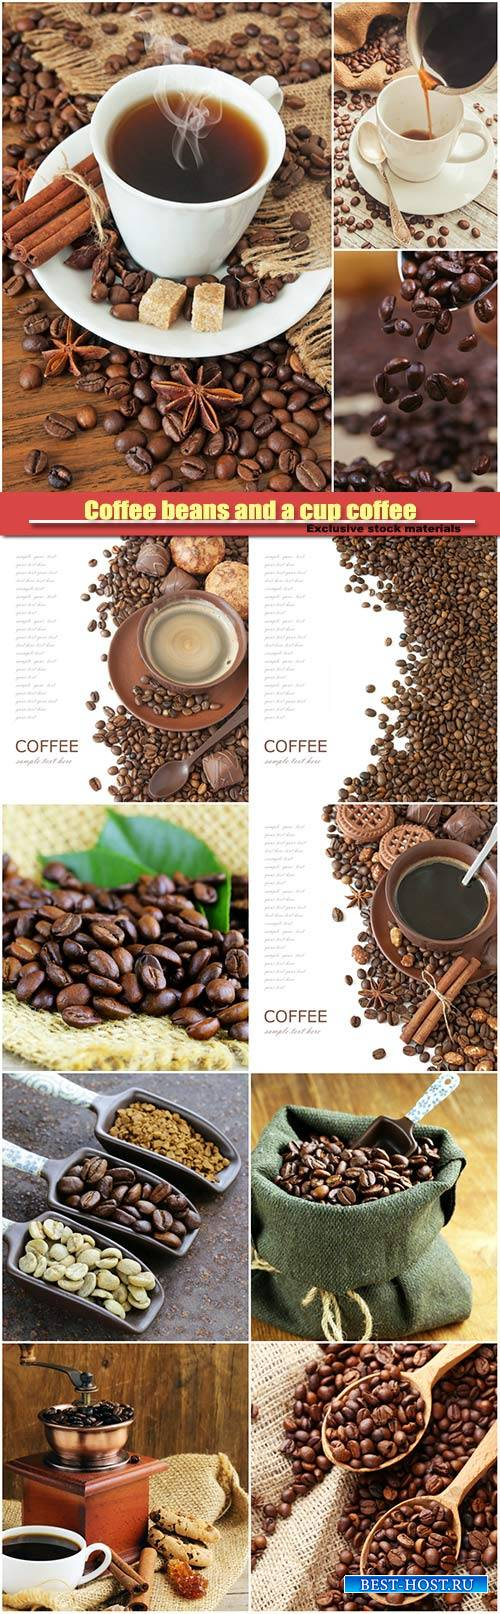 Coffee beans and a cup of fragrant coffee